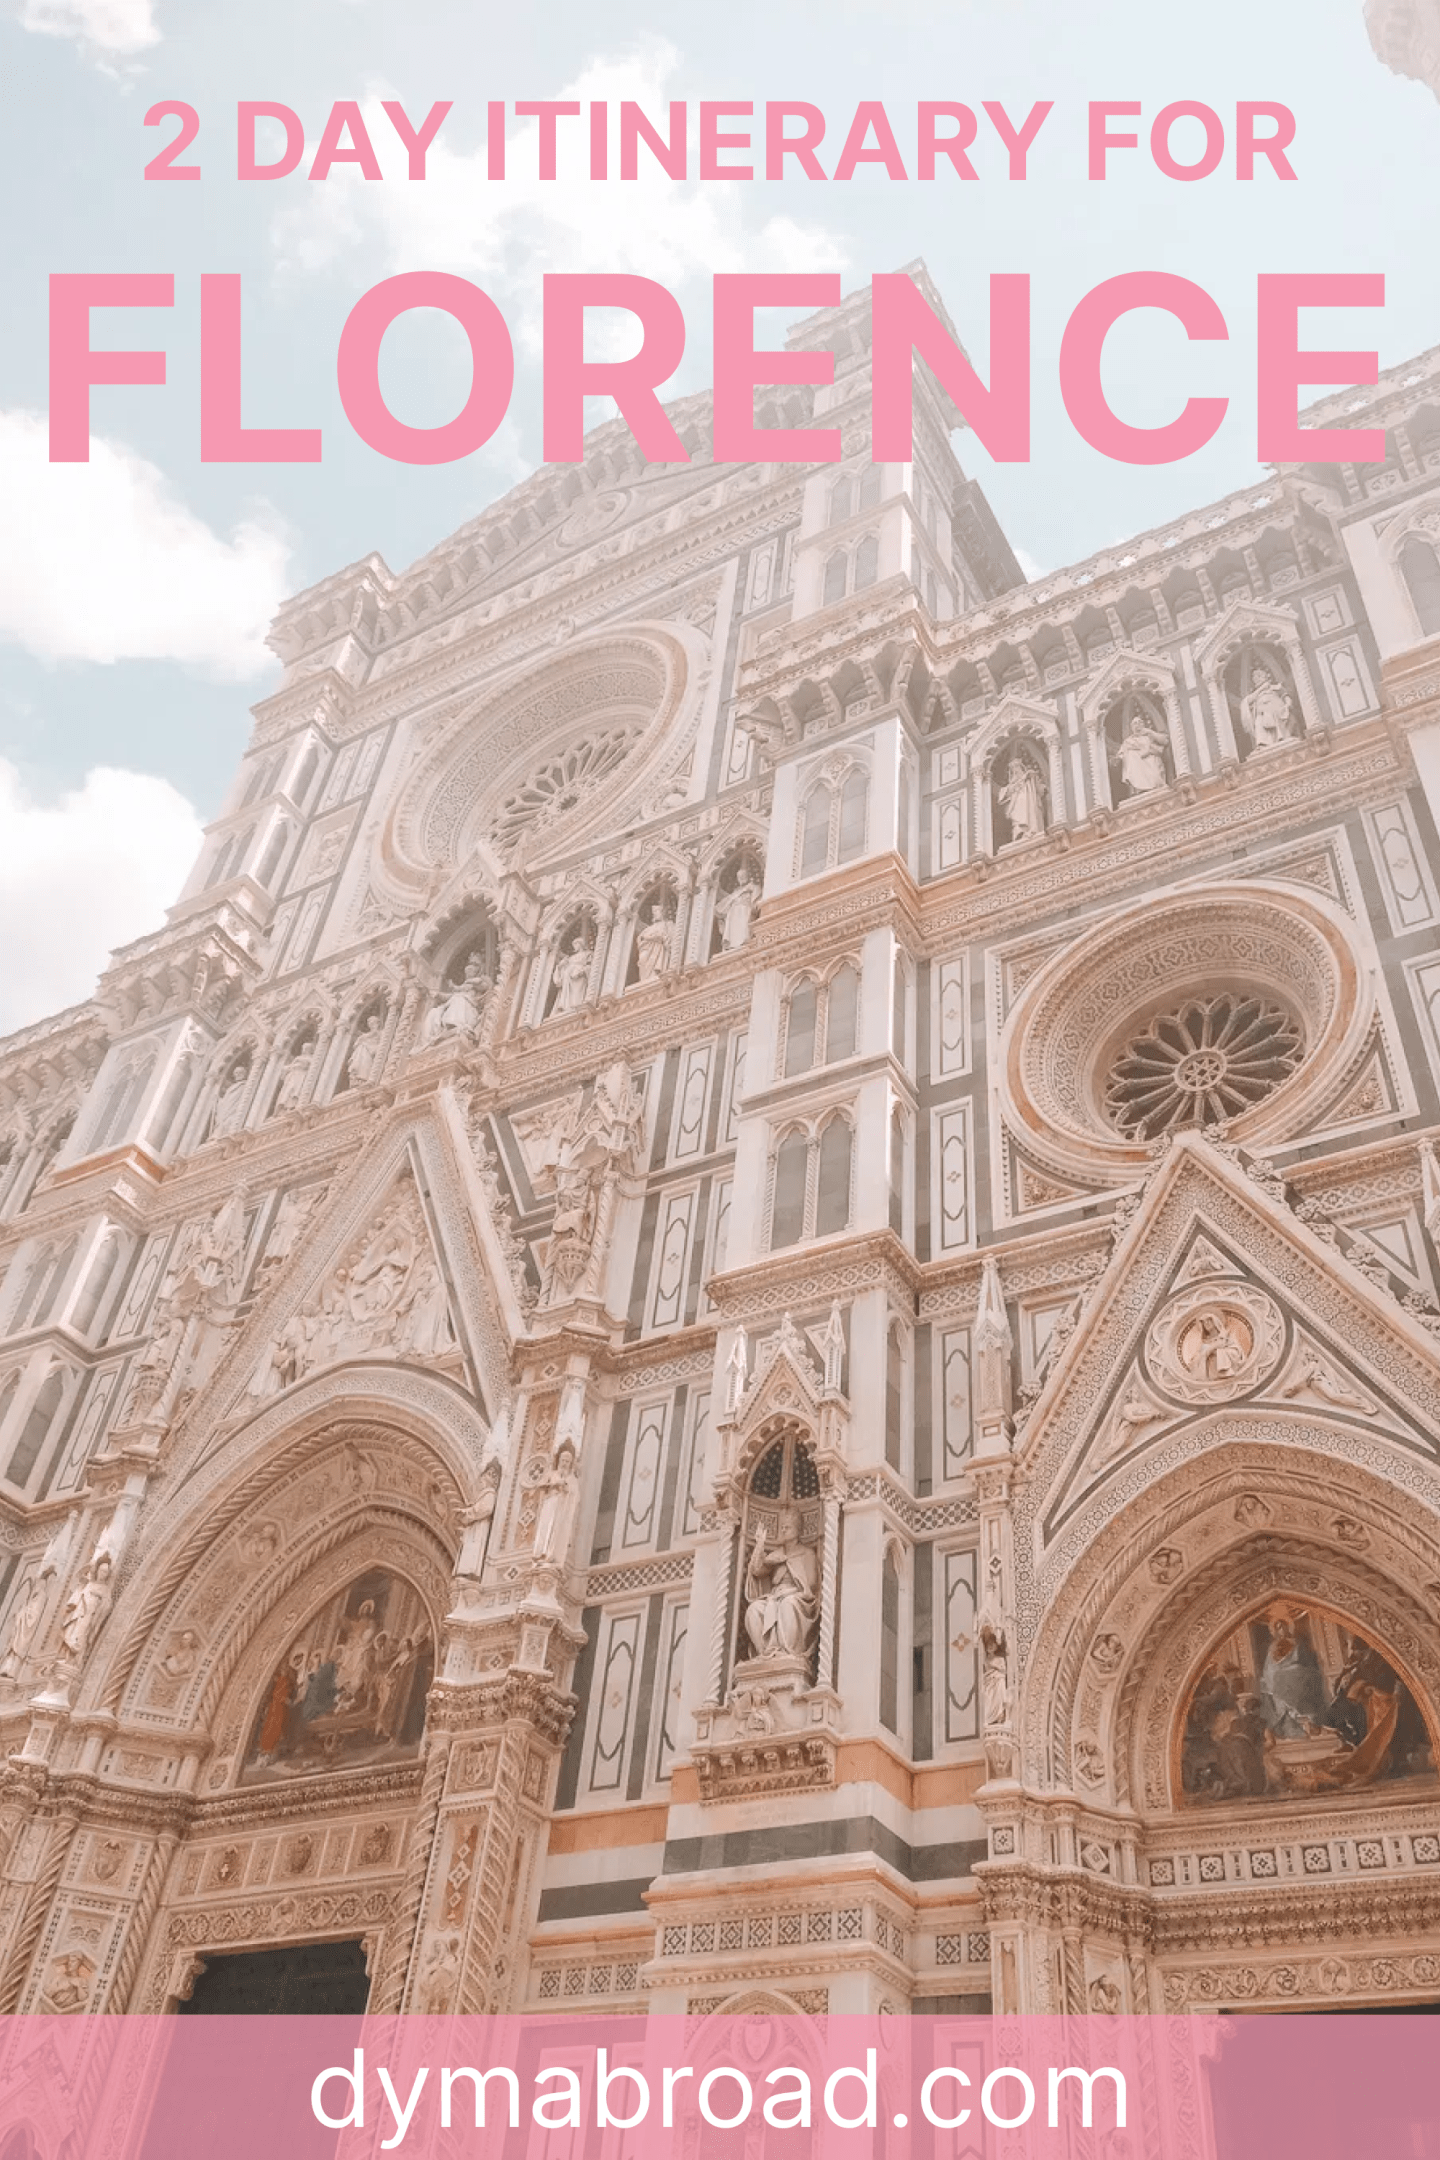 2 days in Florence second Pinterest image